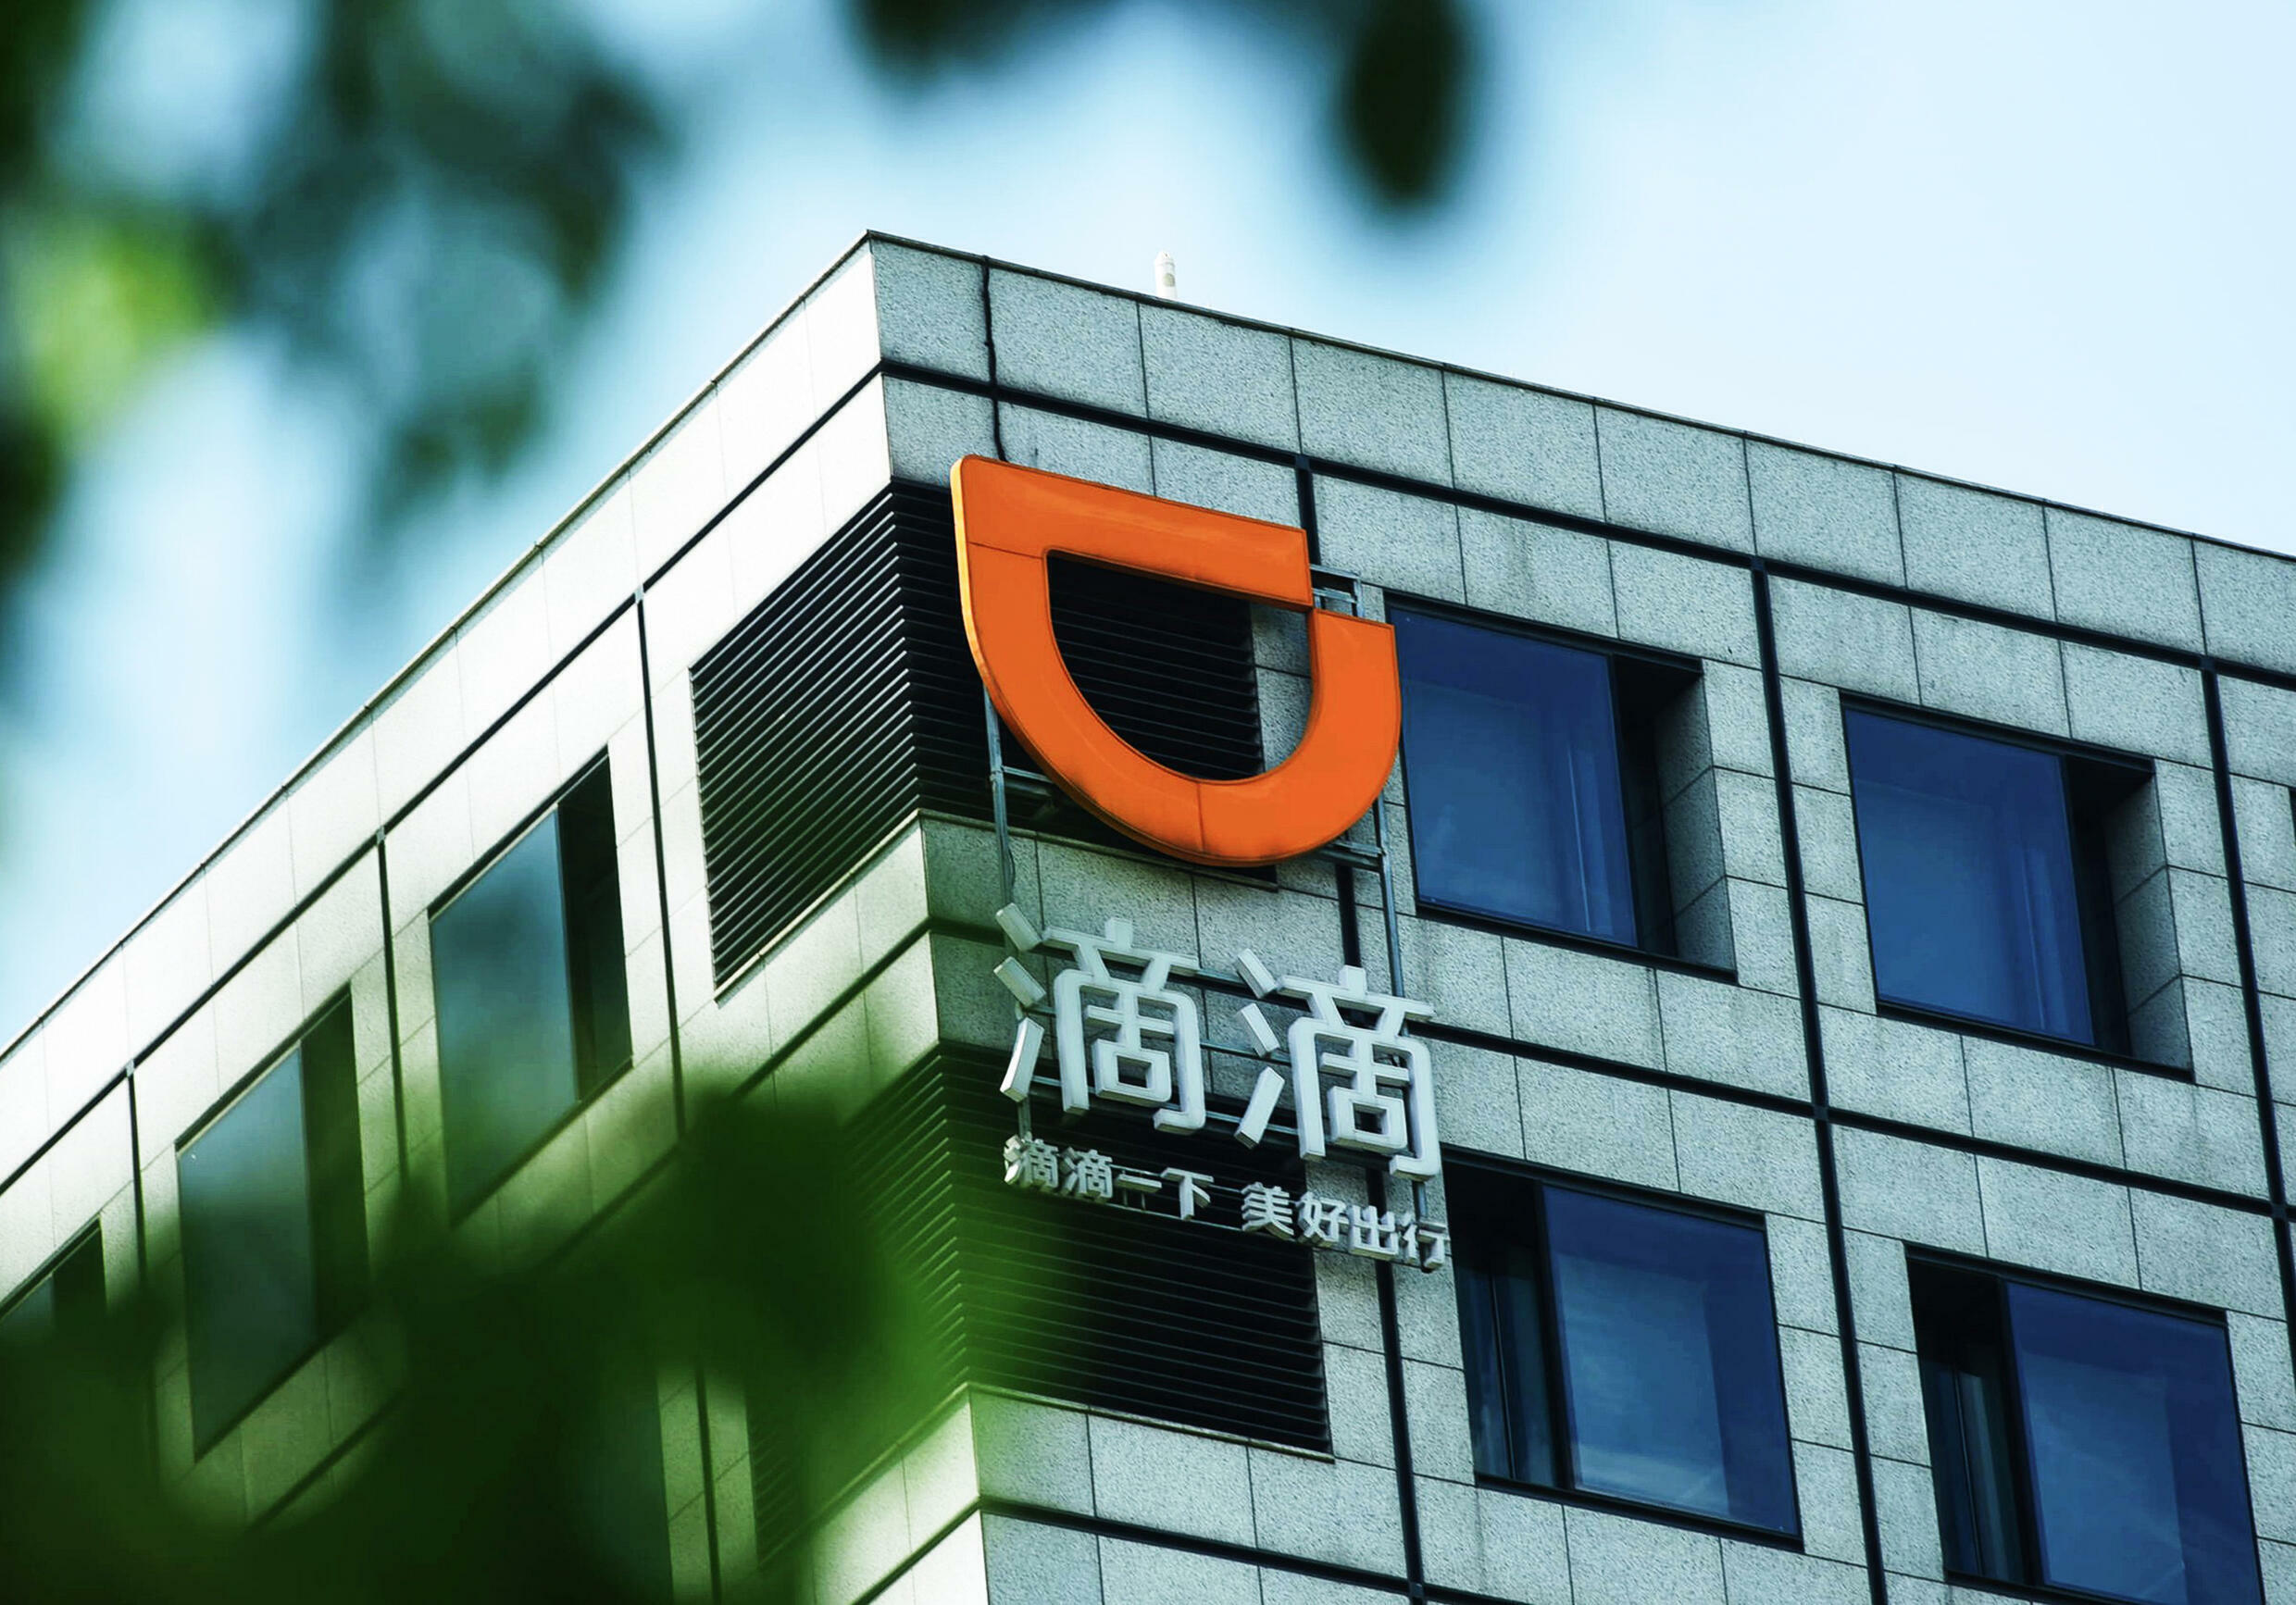 China's order for ride-hailing giant Didi to be removed from app stores has rattled tech firms again as traders grow worried about leaders' crackdown on the sector